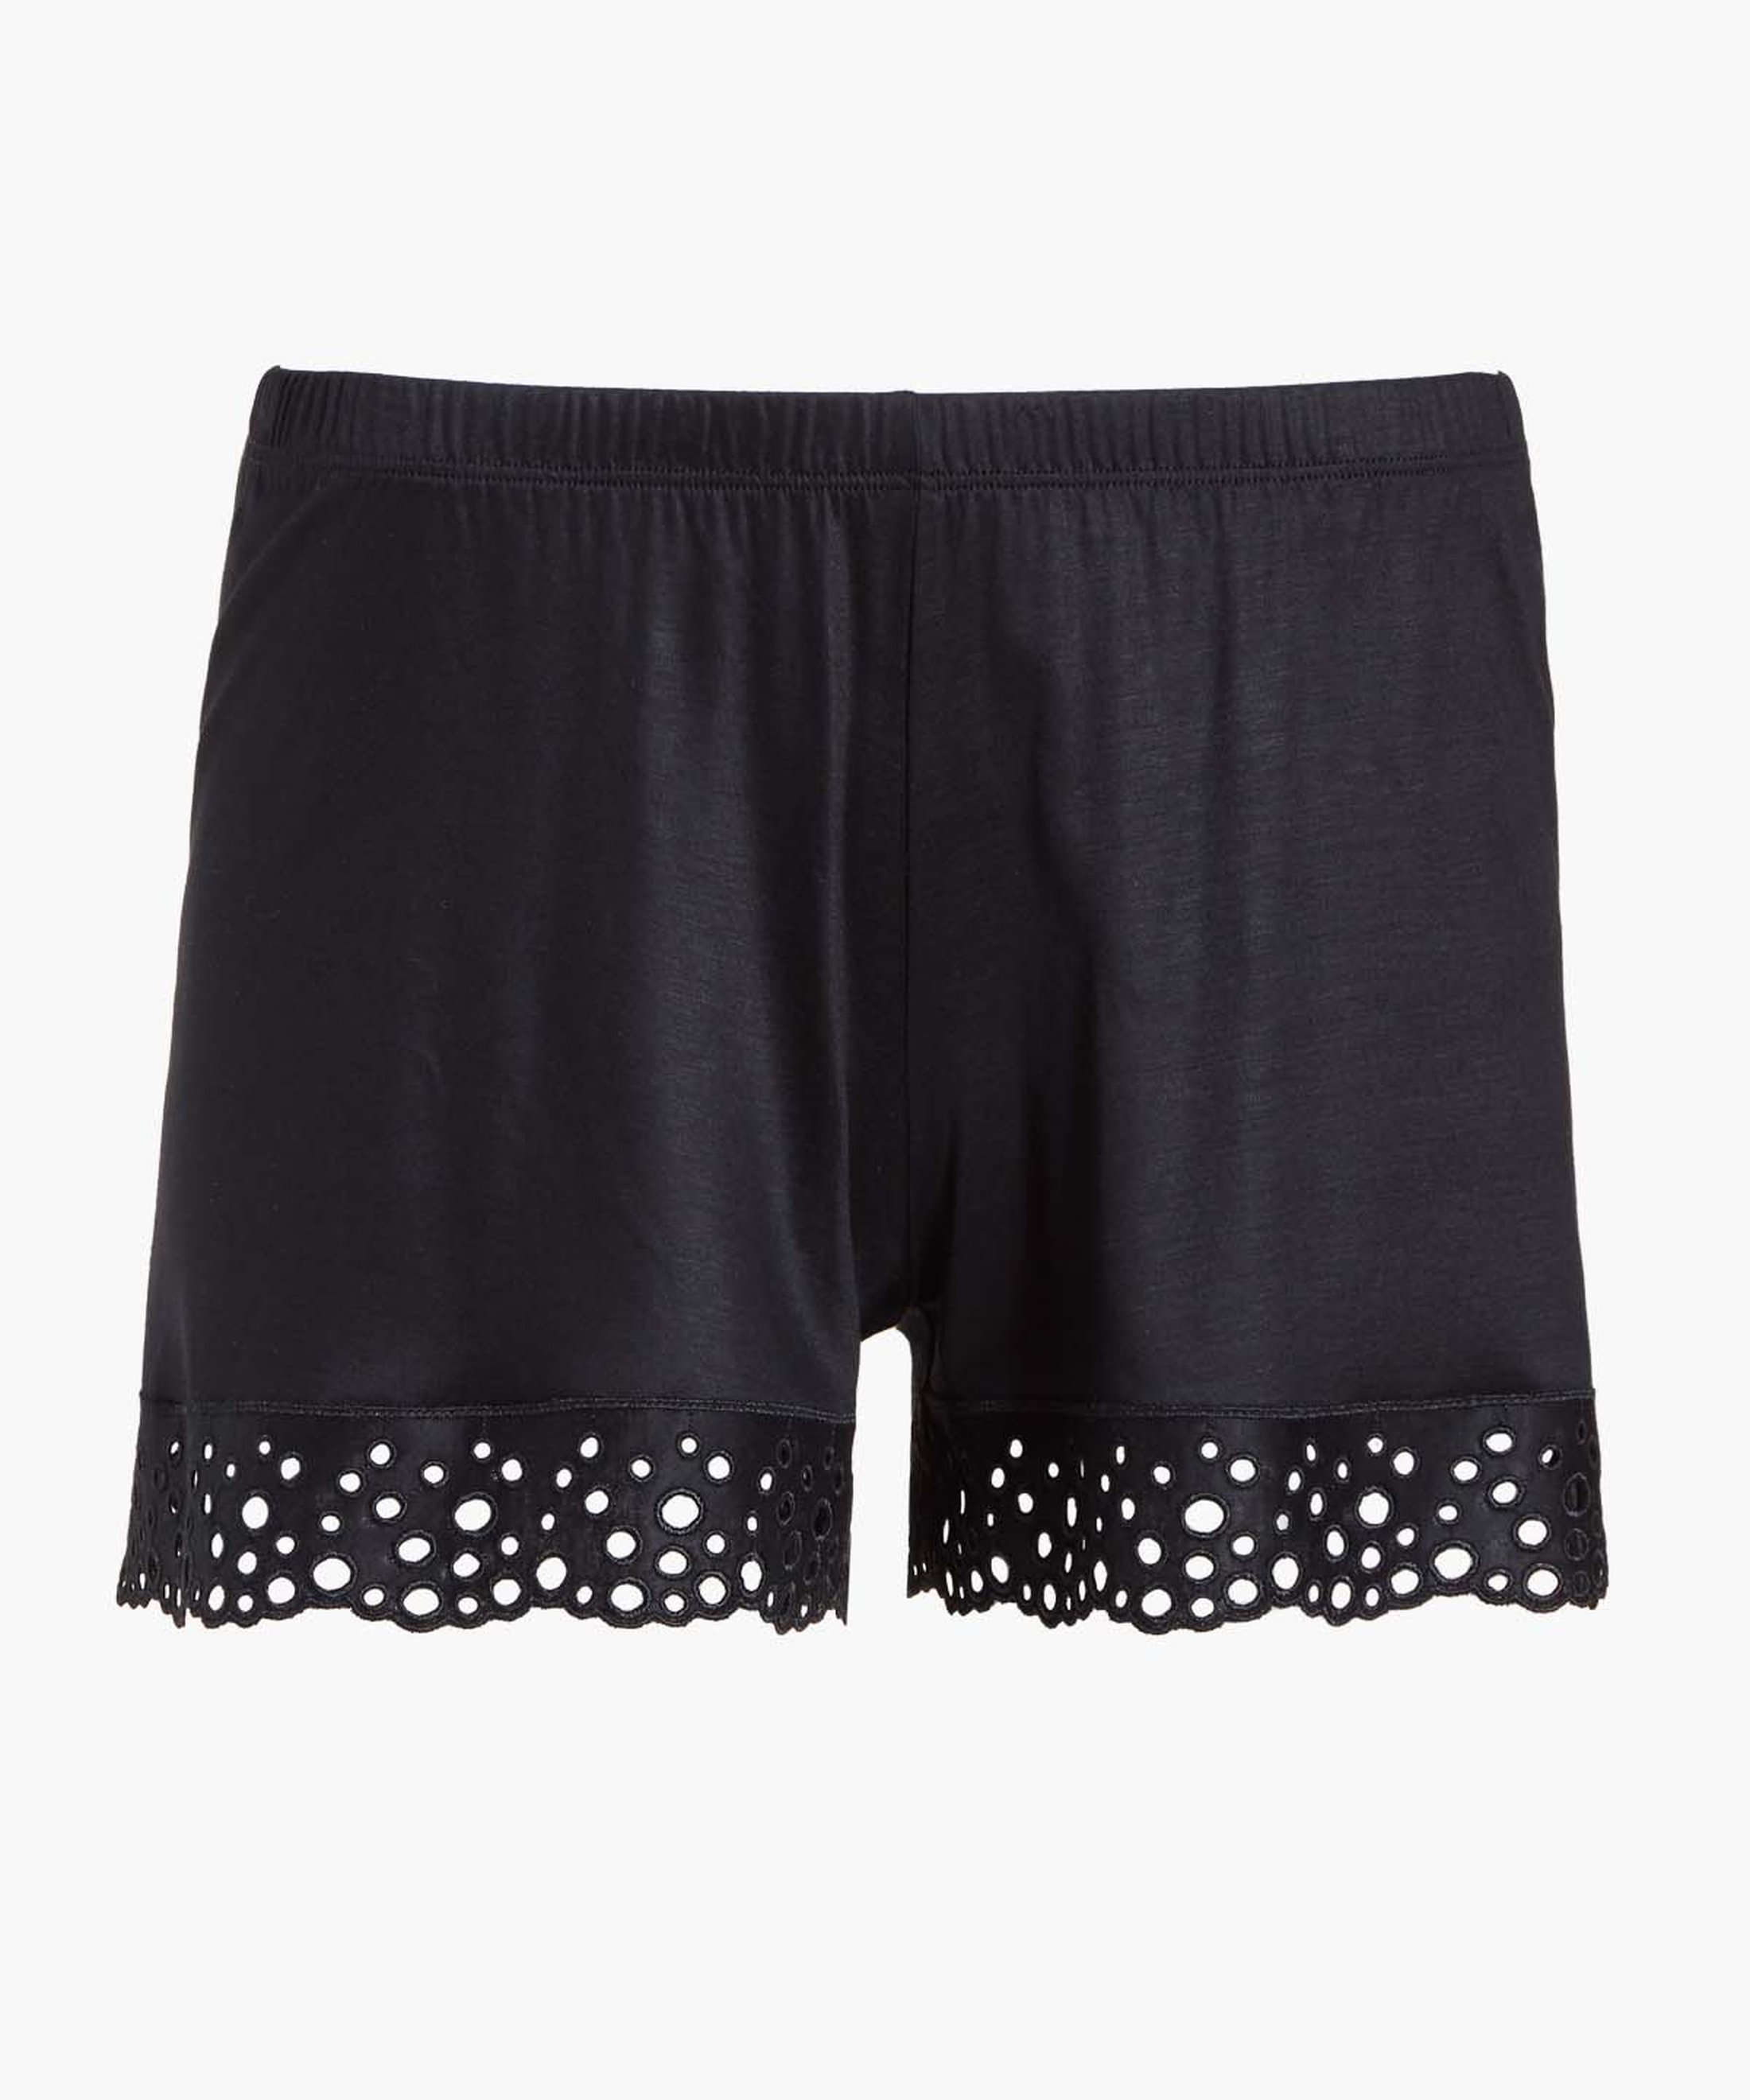 BULLE DE DOUCEUR Shorty en Tencel Noir | Aubade